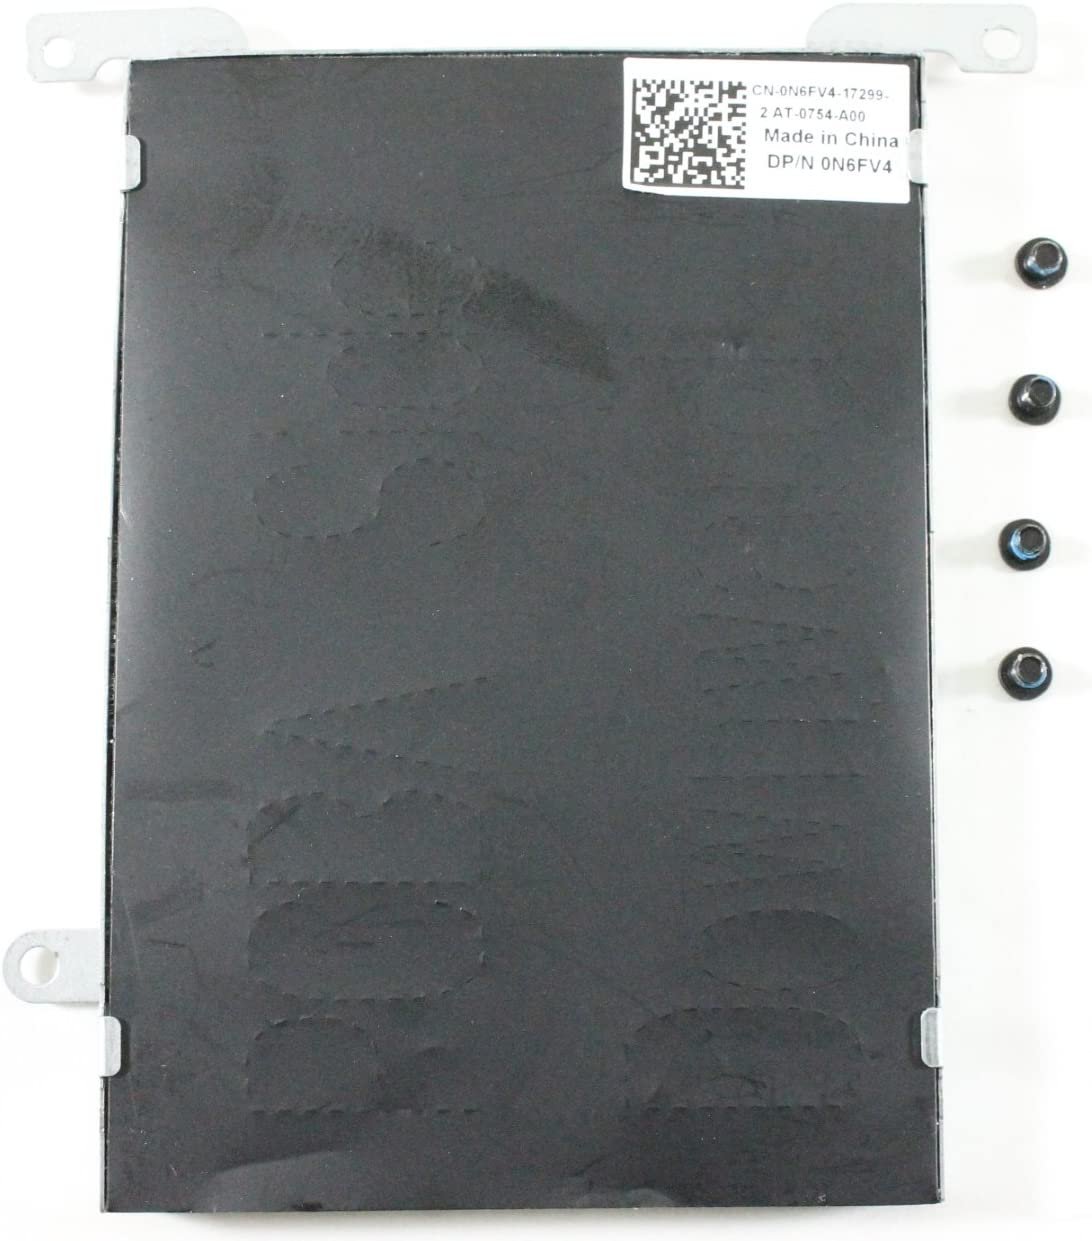 Dell Laptop N6FV4 Primary Black Hard Drive Caddy Inspiron 5523